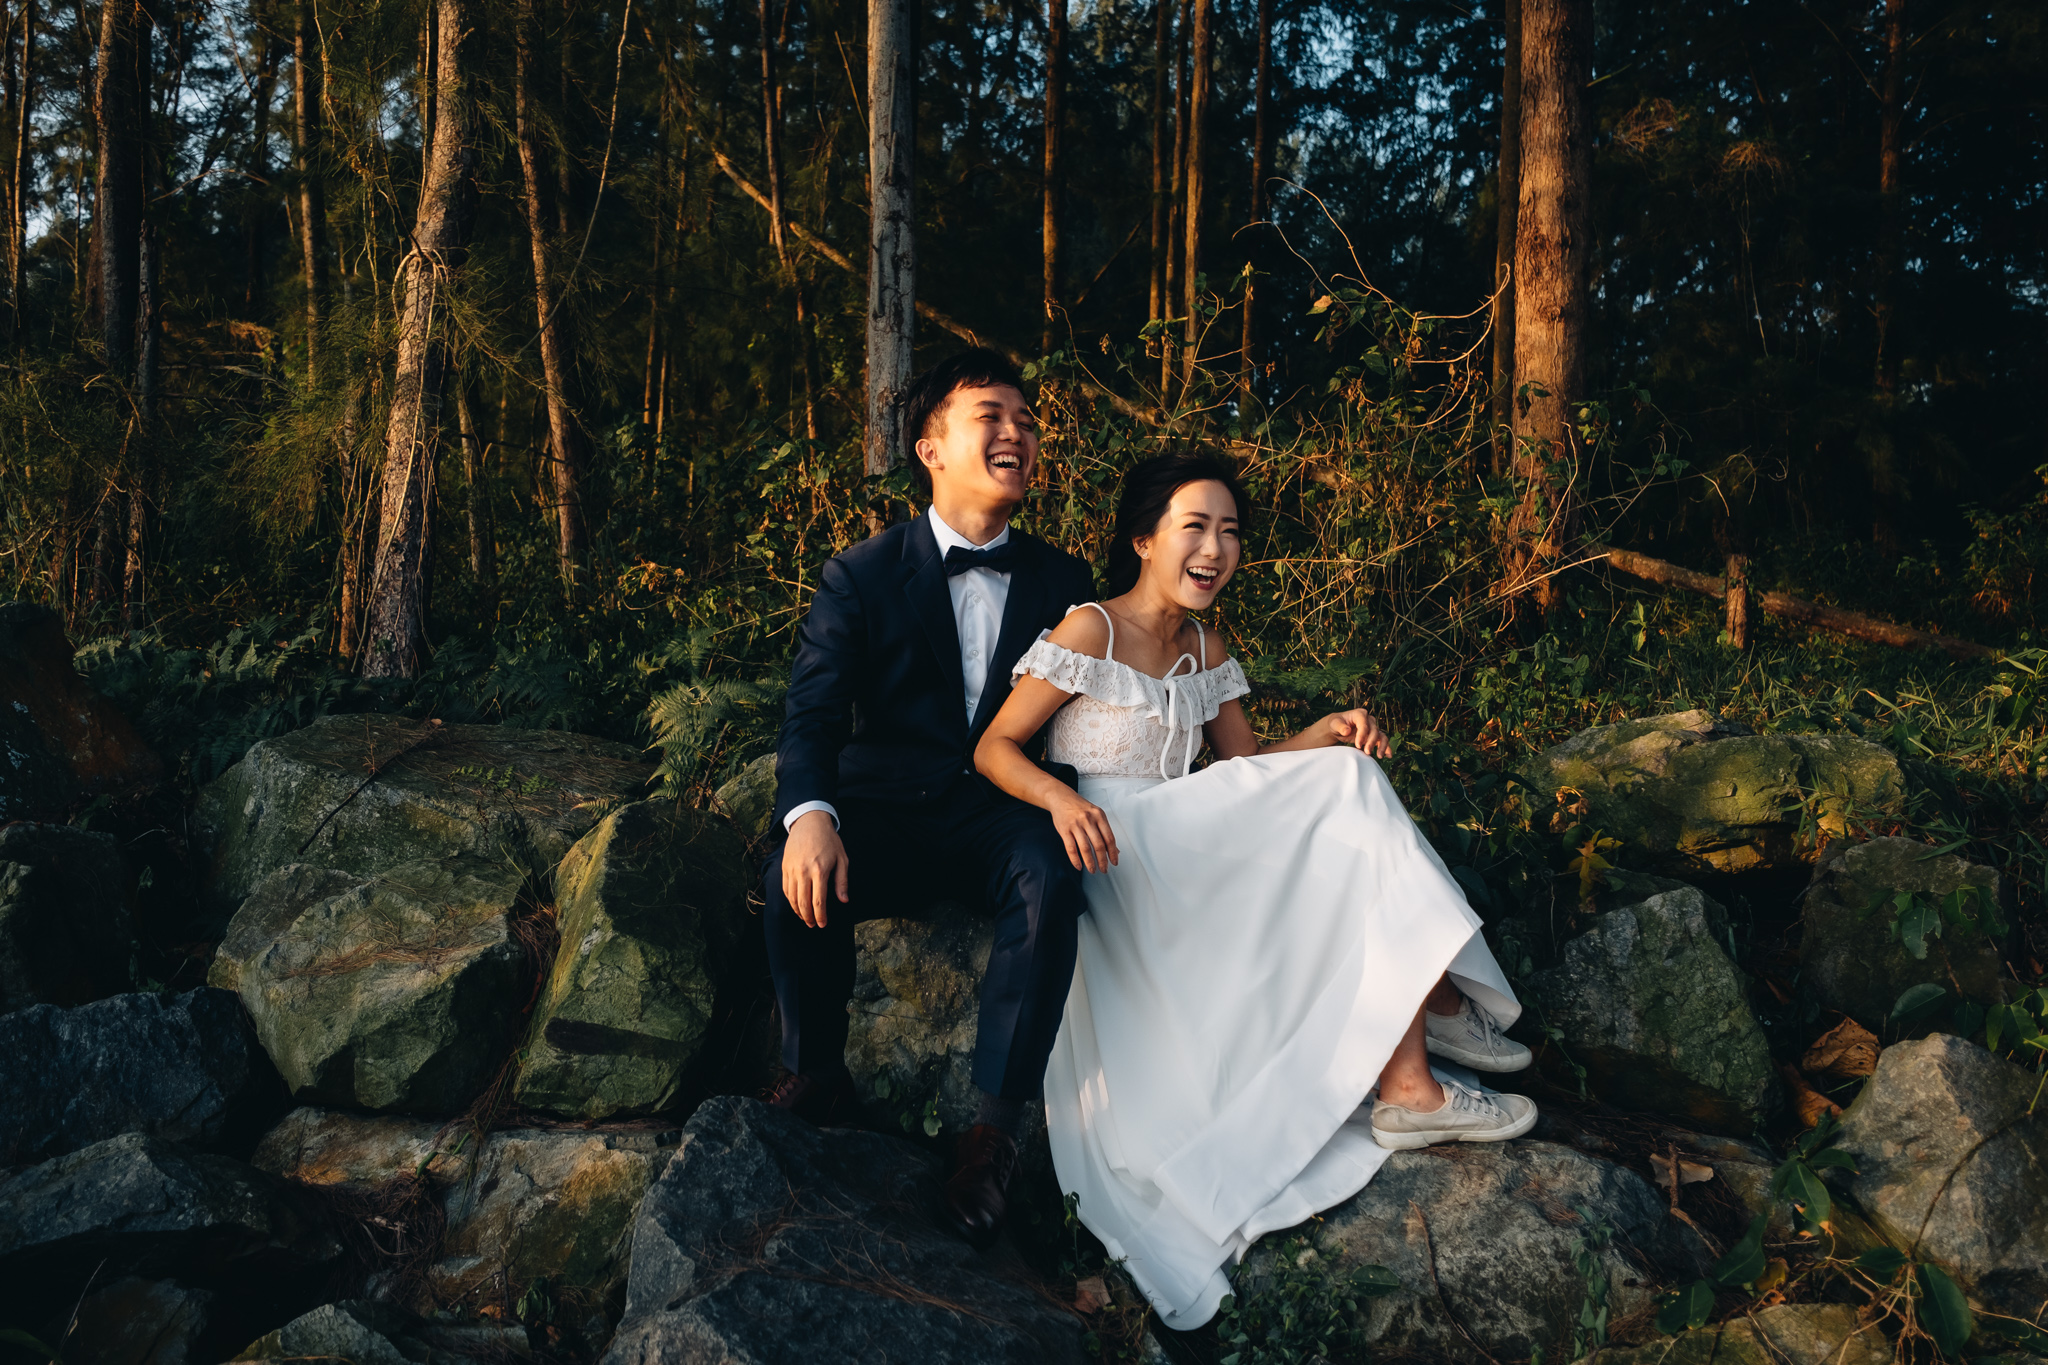 Sabrina & Willy Pre-Wed (resized for sharing) - 010.jpg